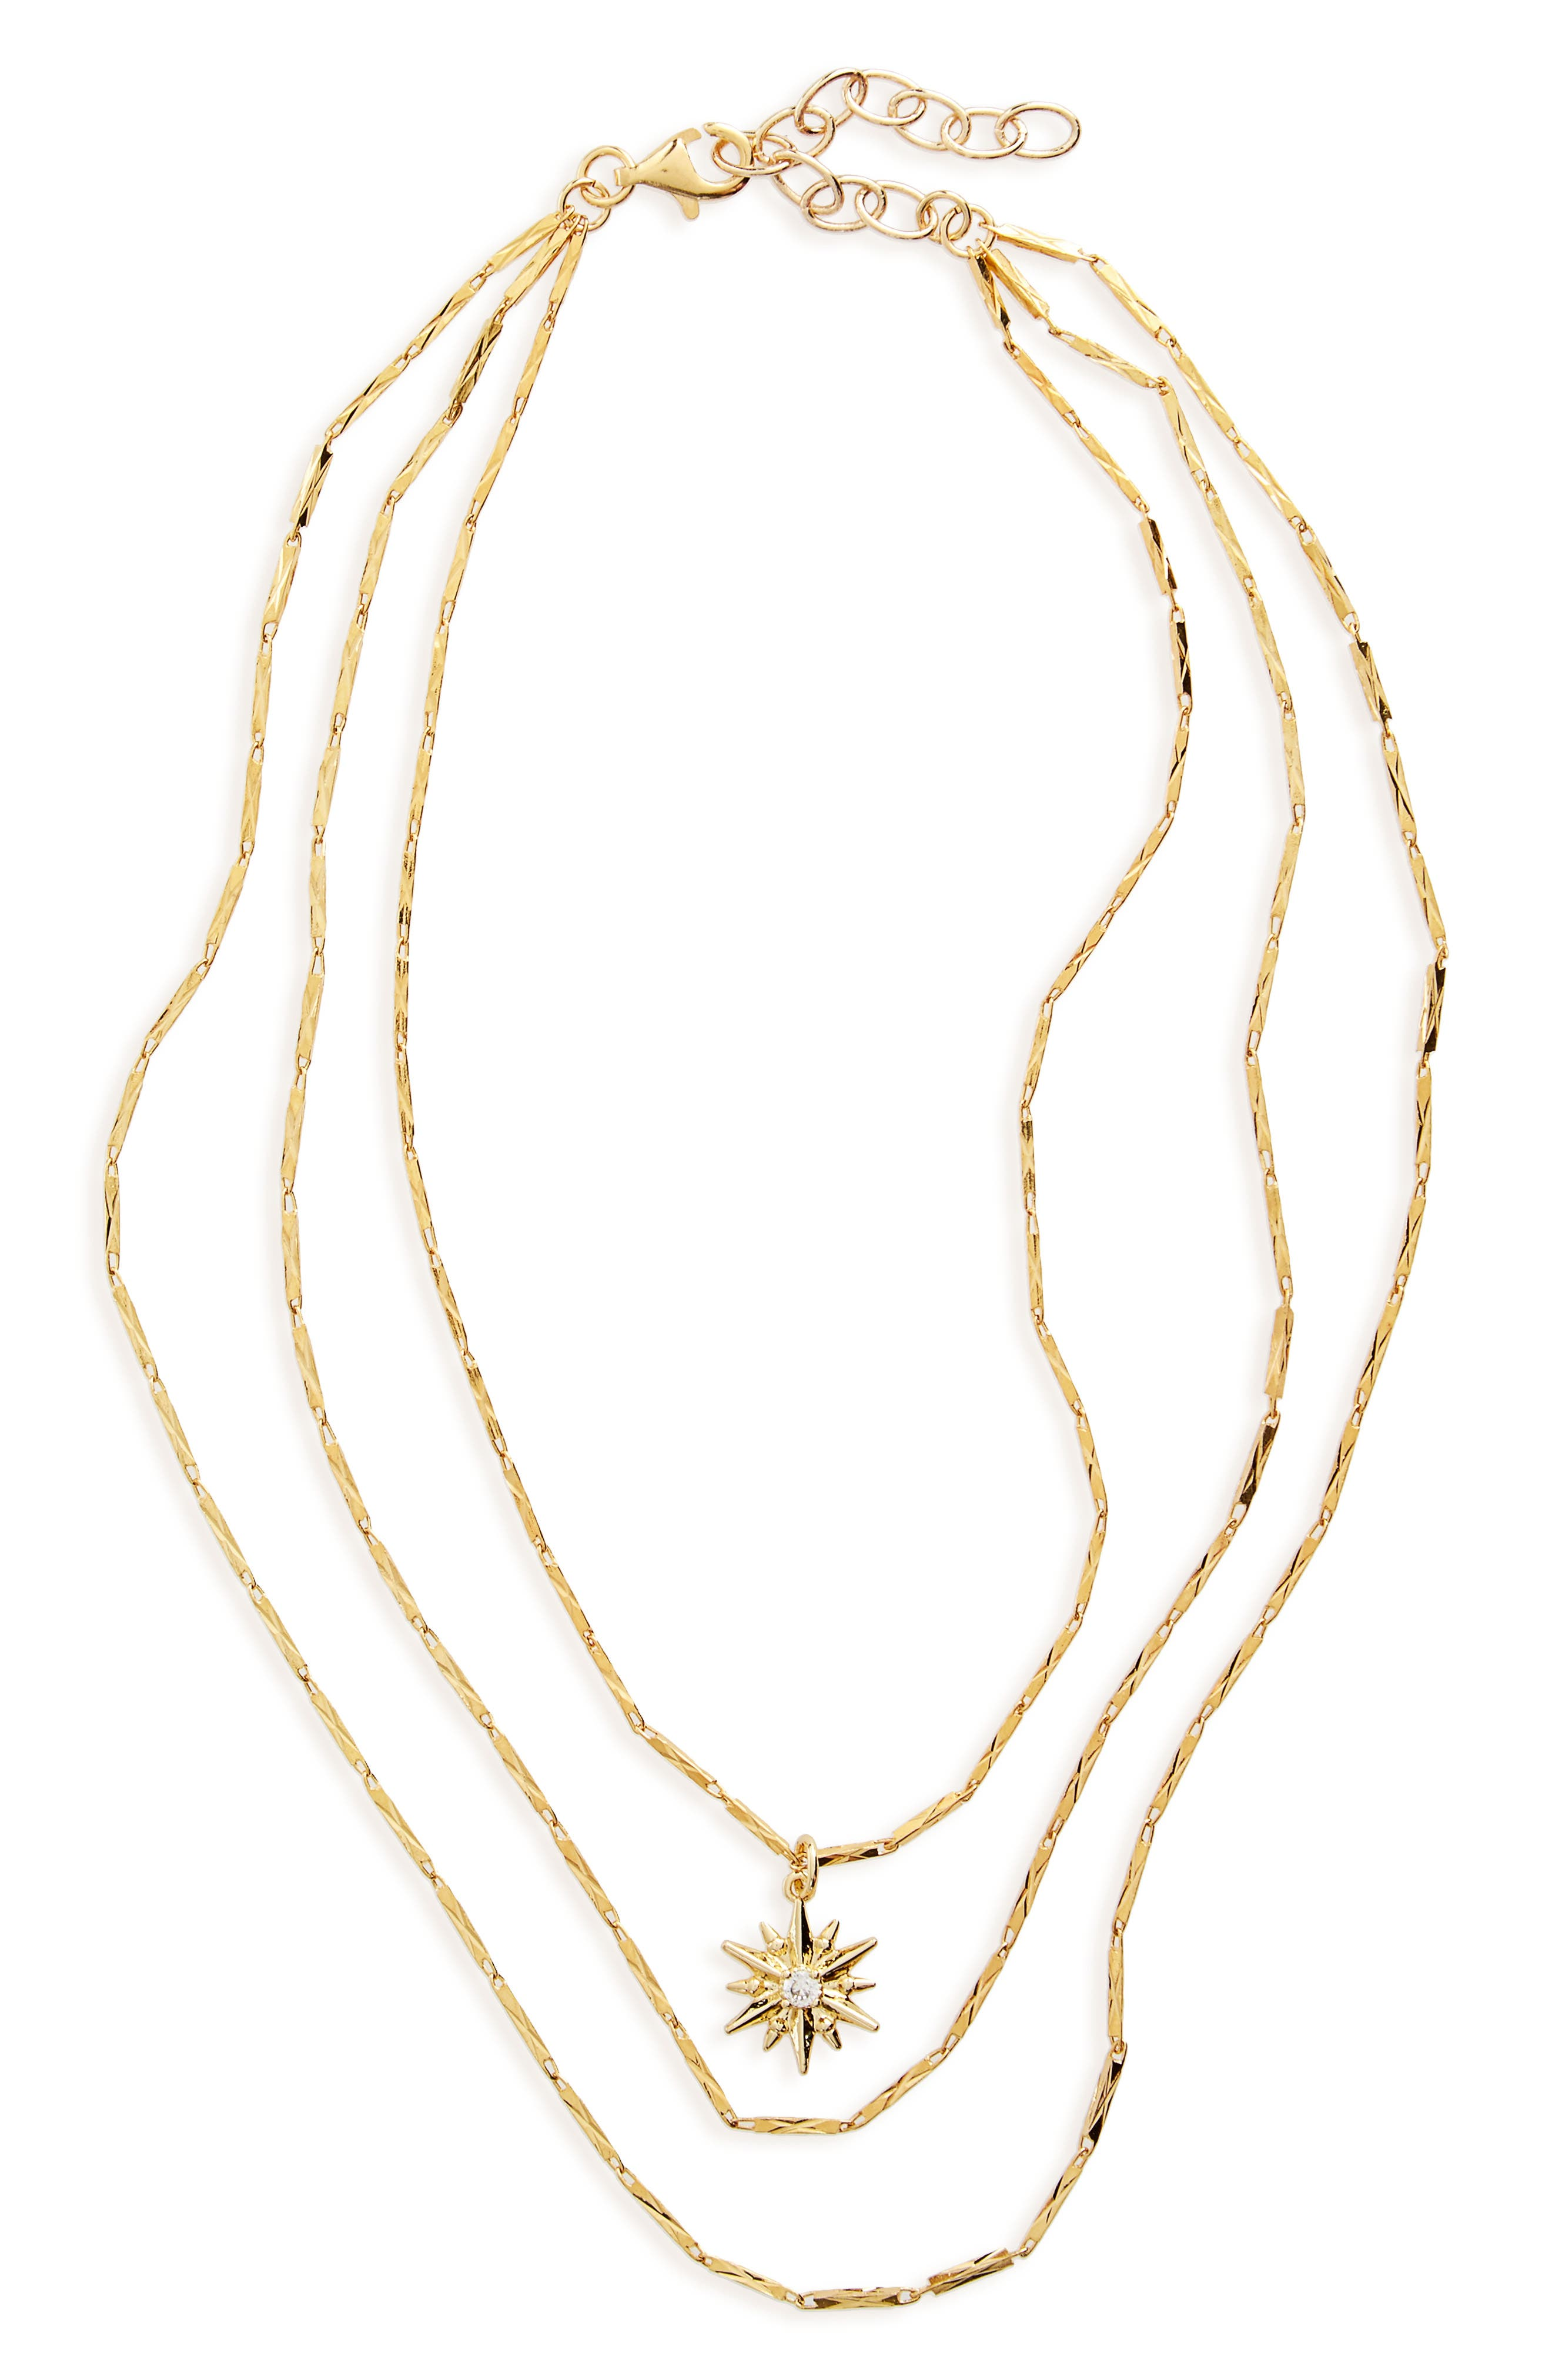 FRASIER STERLING Stop Playing Layered Necklace